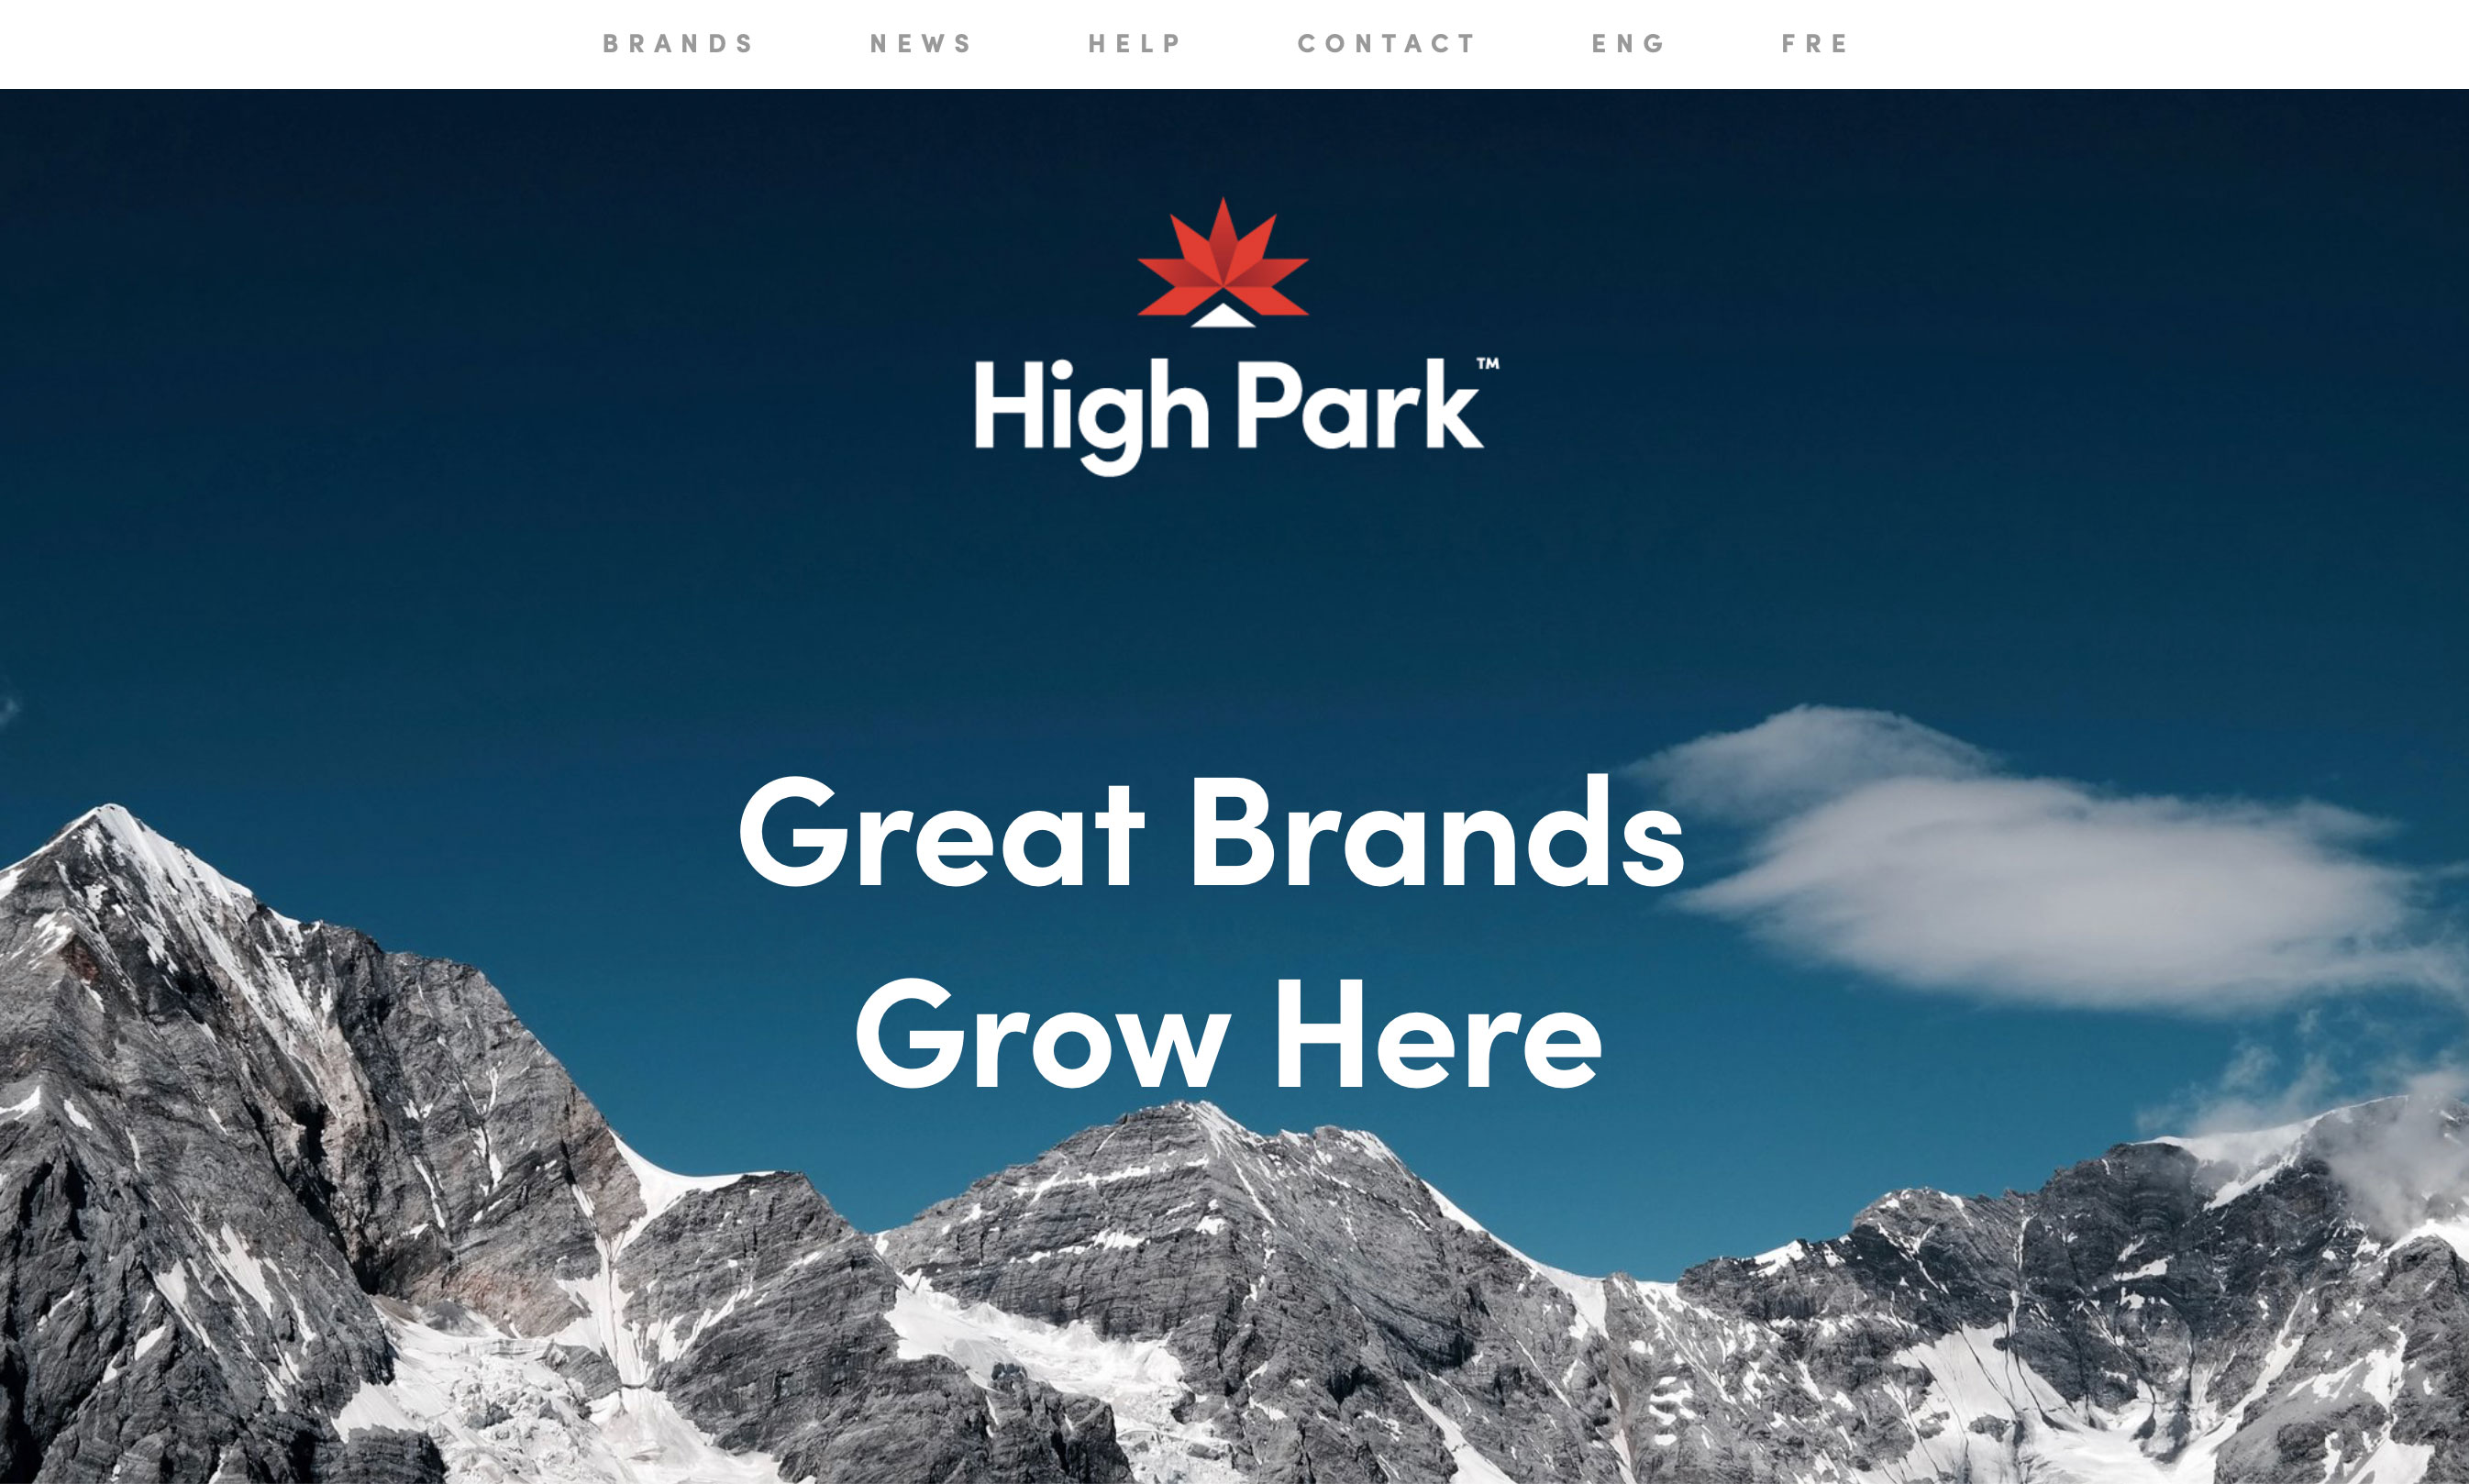 image of High Park website home page